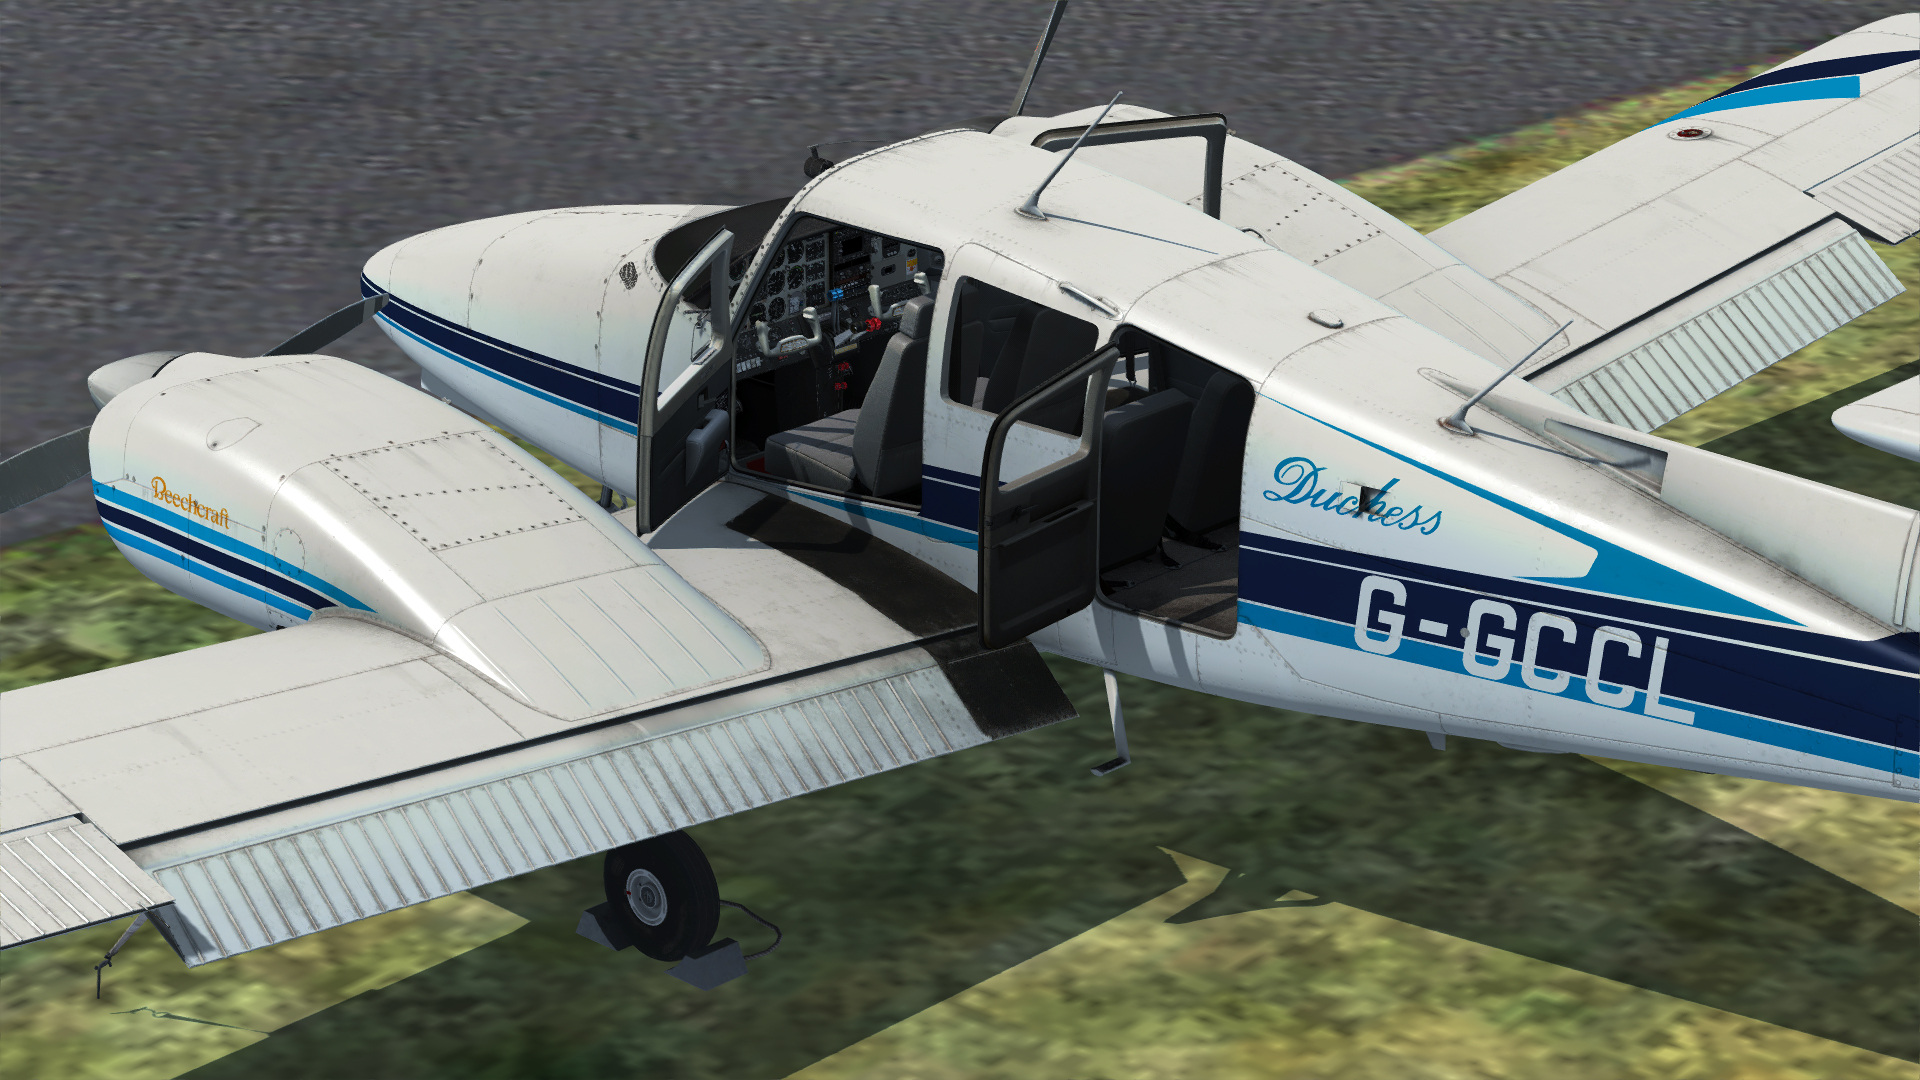 JUSTFLIGHT - DUCHESS MODEL 76 公爵夫人76 双发轻型飞机 FSX P3D